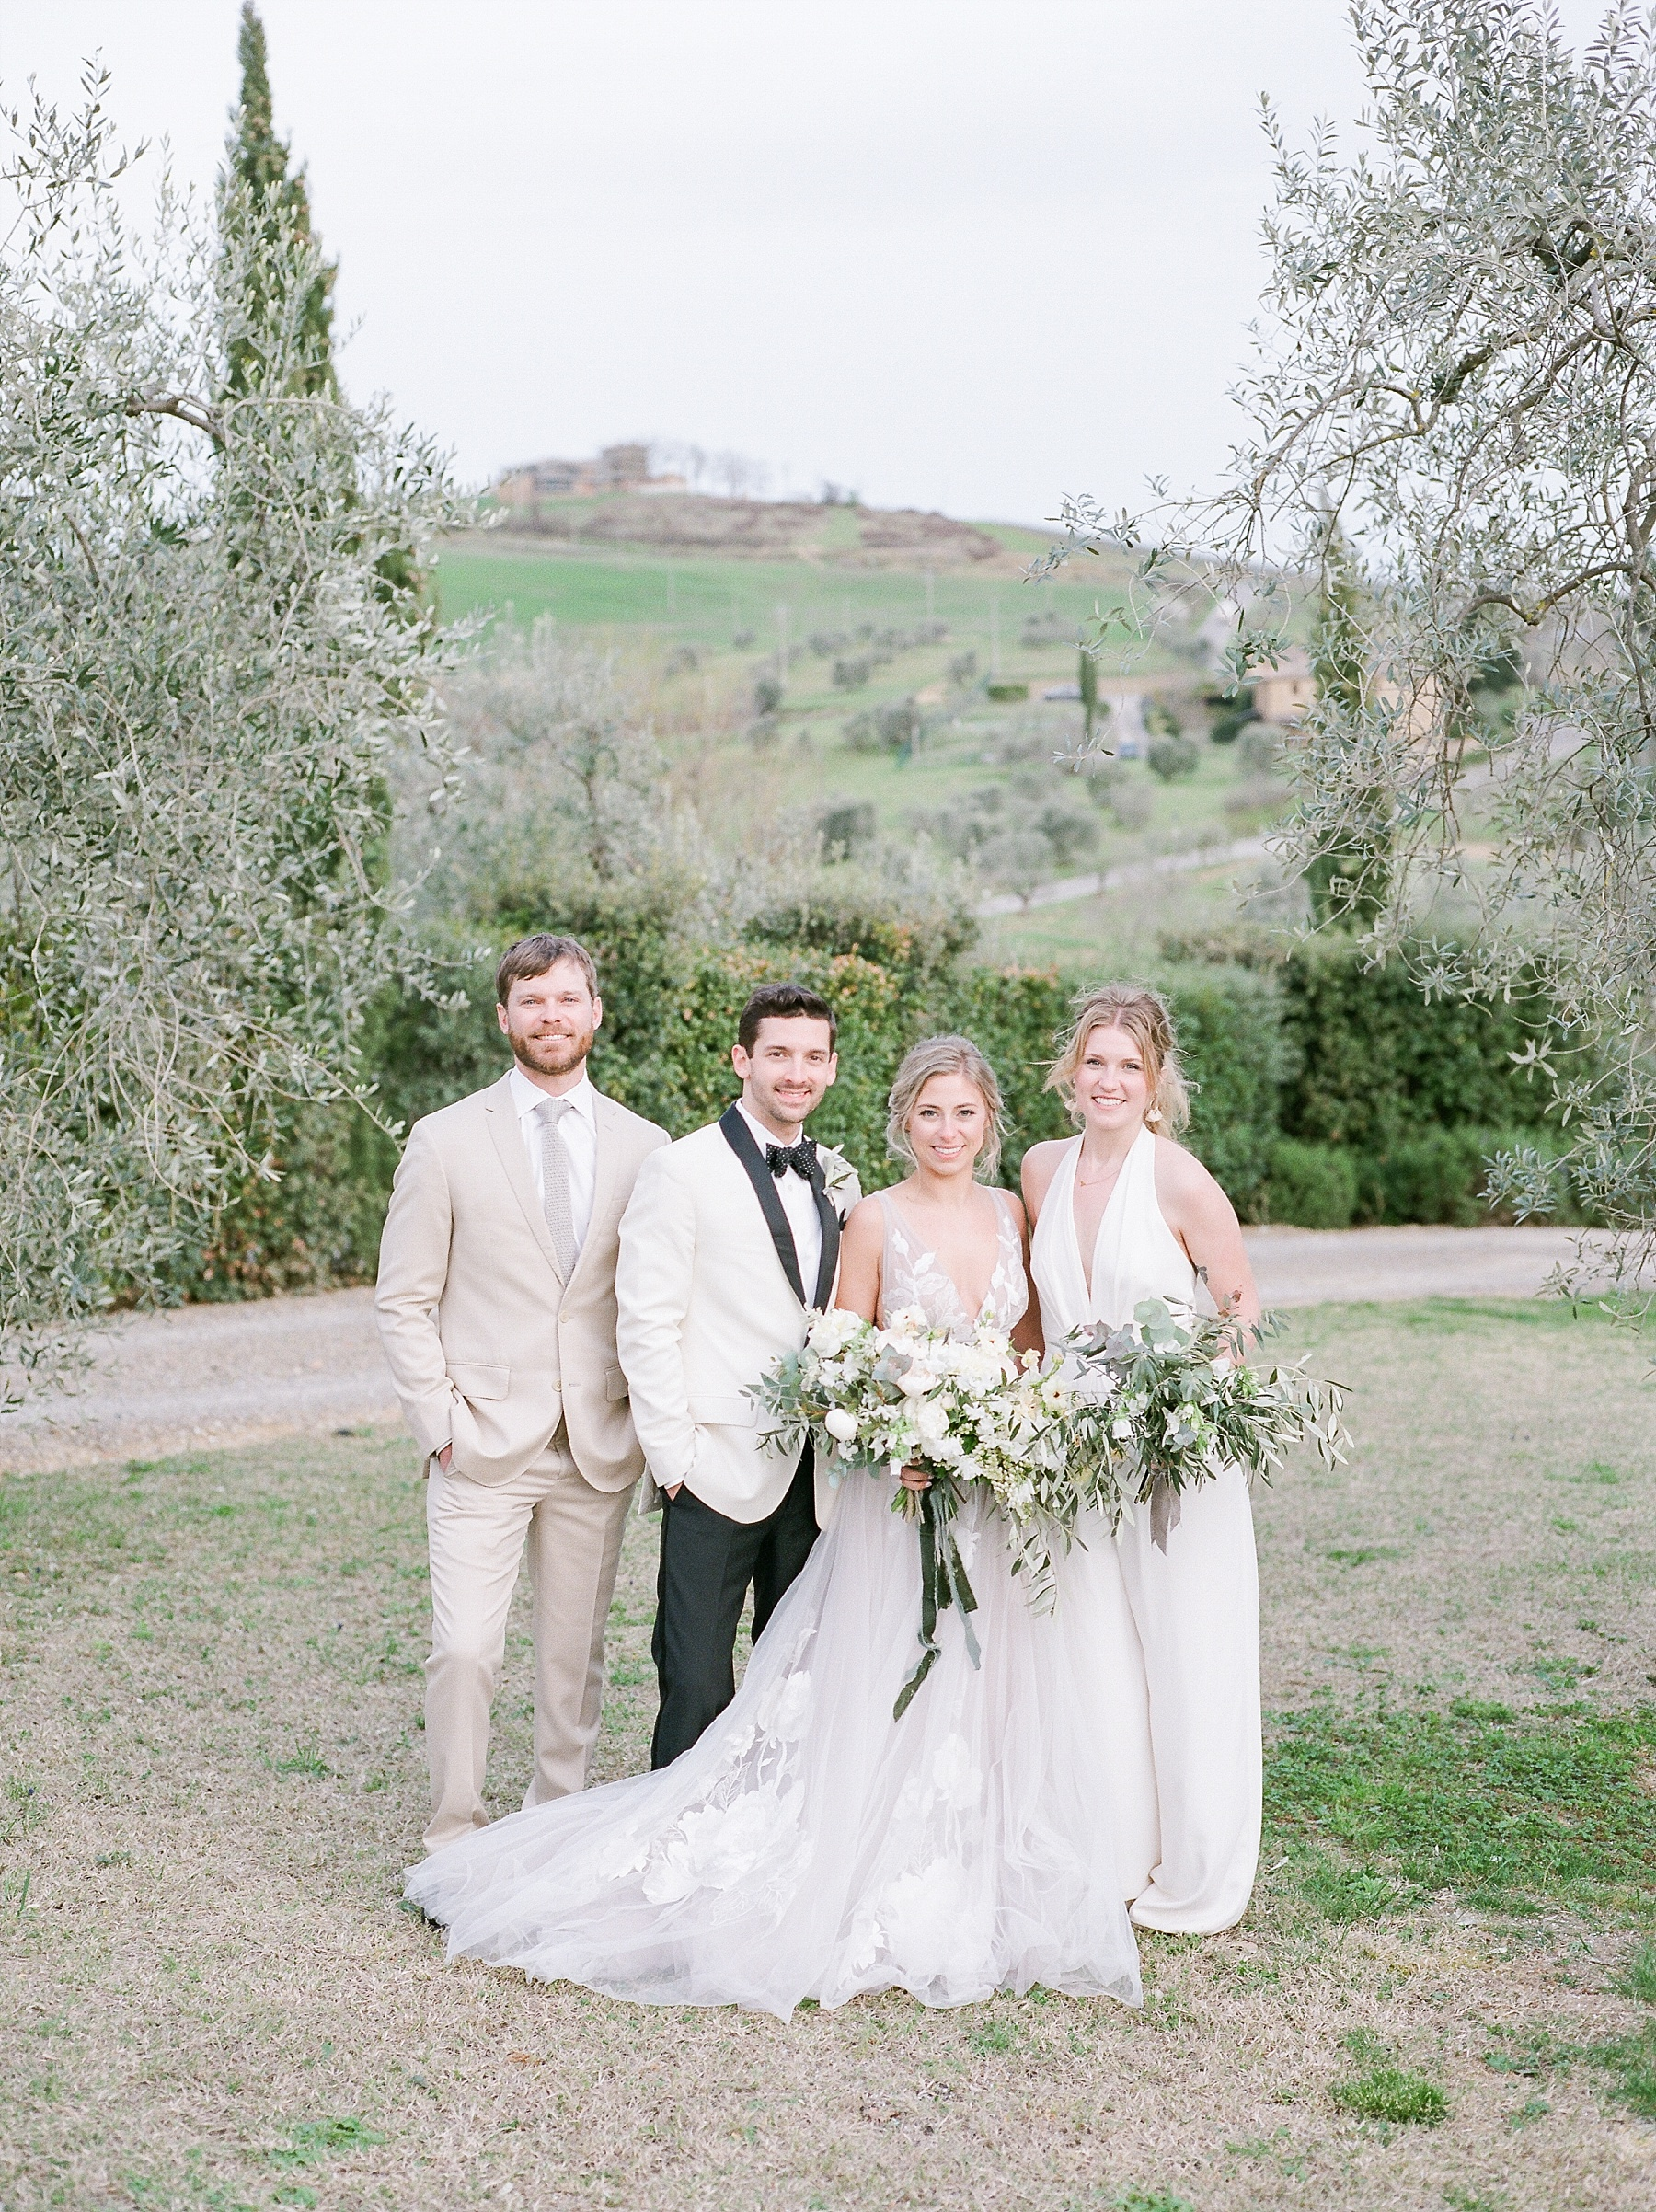 All White Destination Wedding in the Hills of Tuscany Italy at Estate Borgo Petrognano by Kelsi Kliethermes Photography_0055.jpg